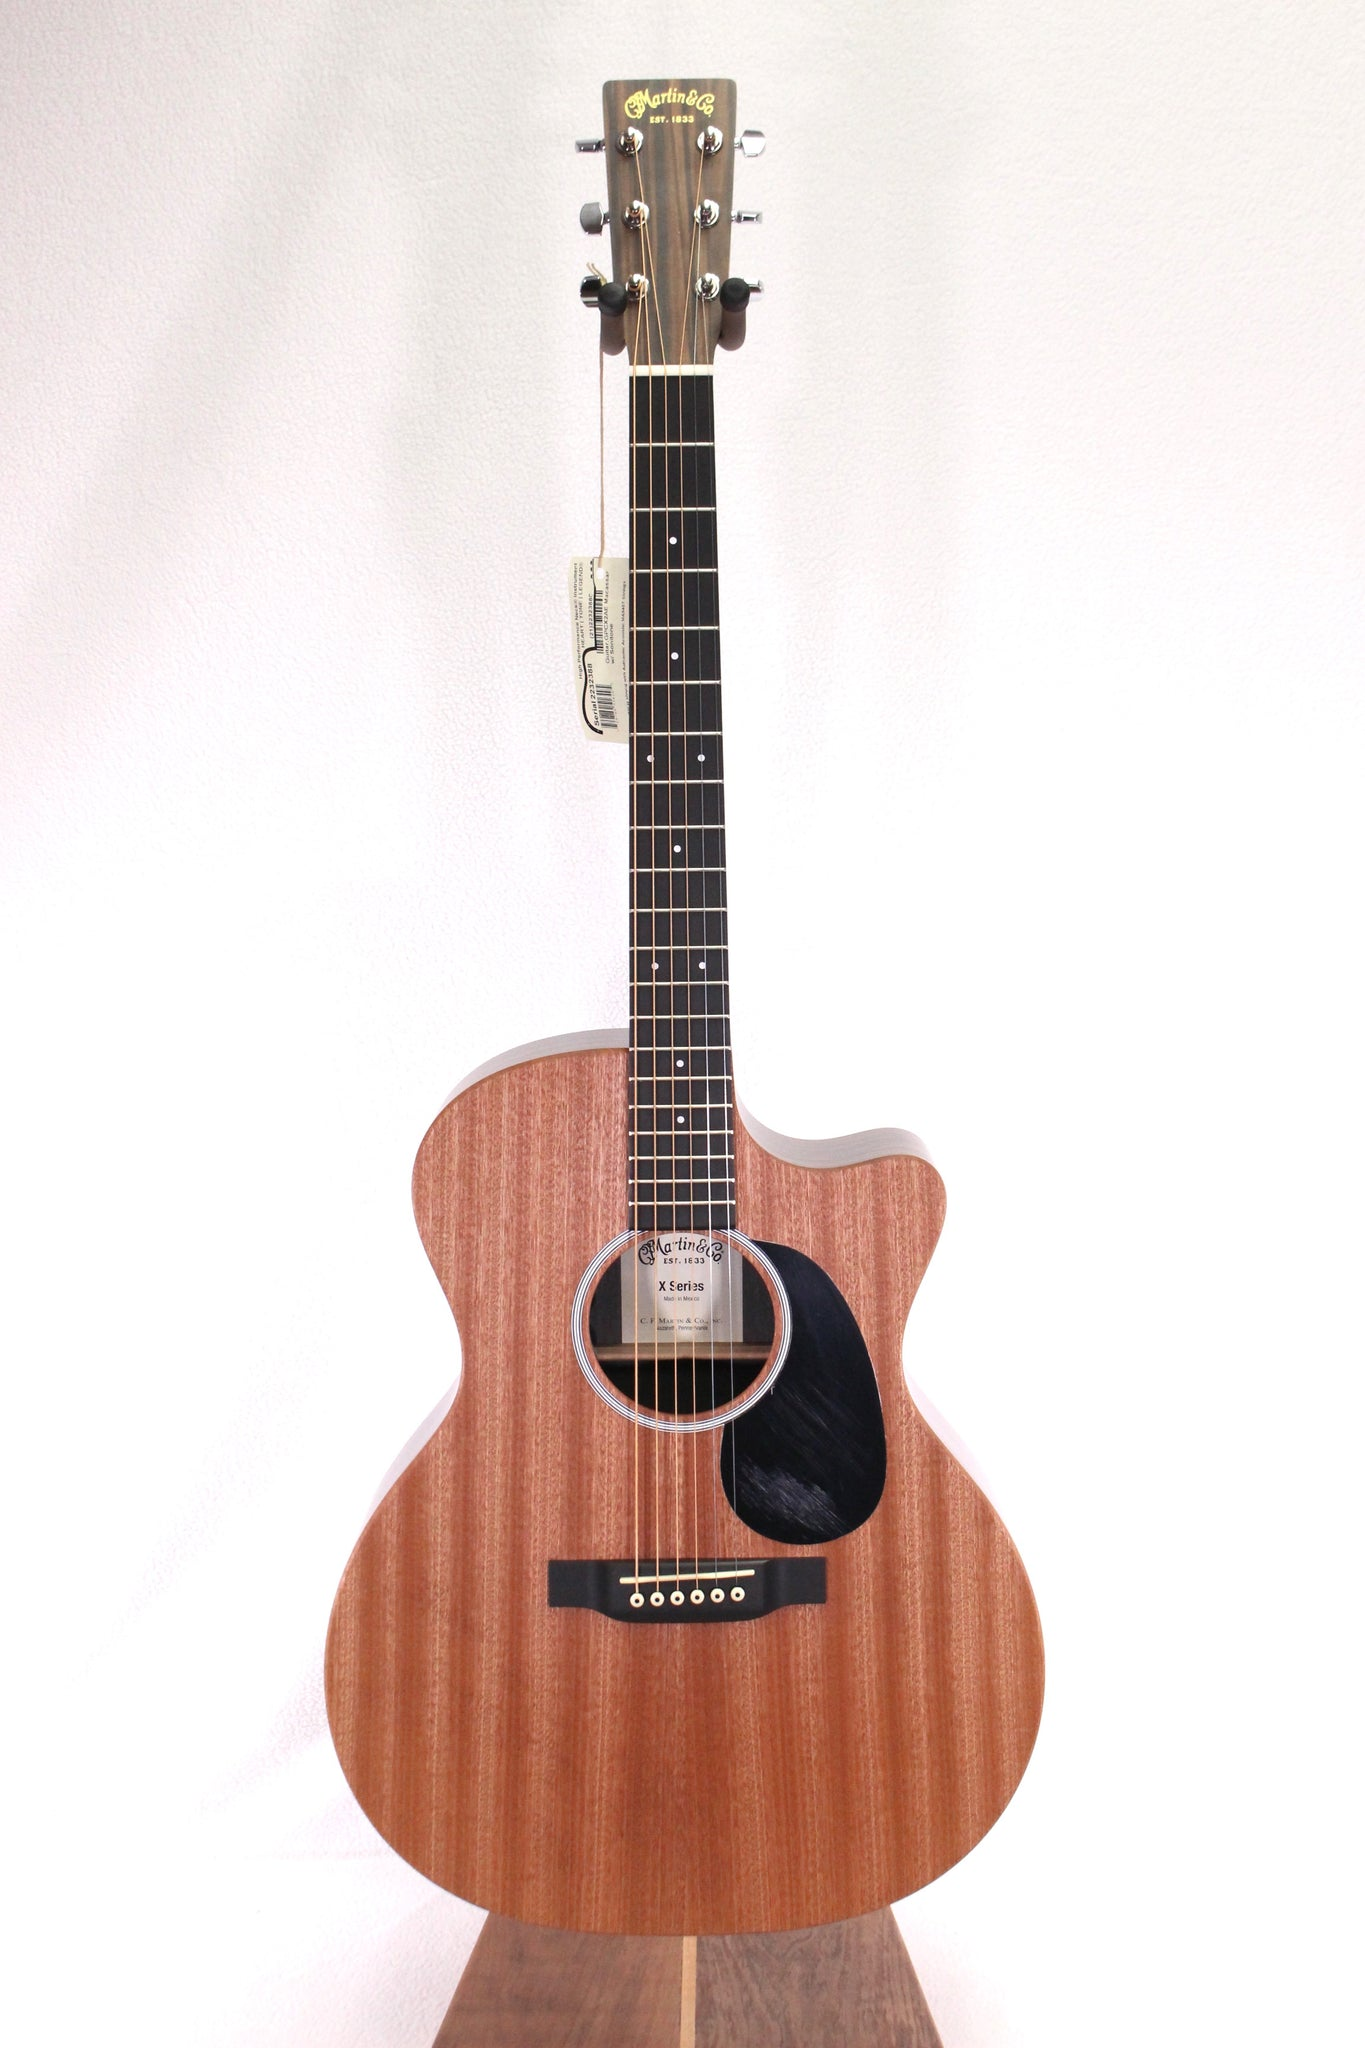 Martin Gpcx2ae Macassar Acoustic Electric Guitar Strings And